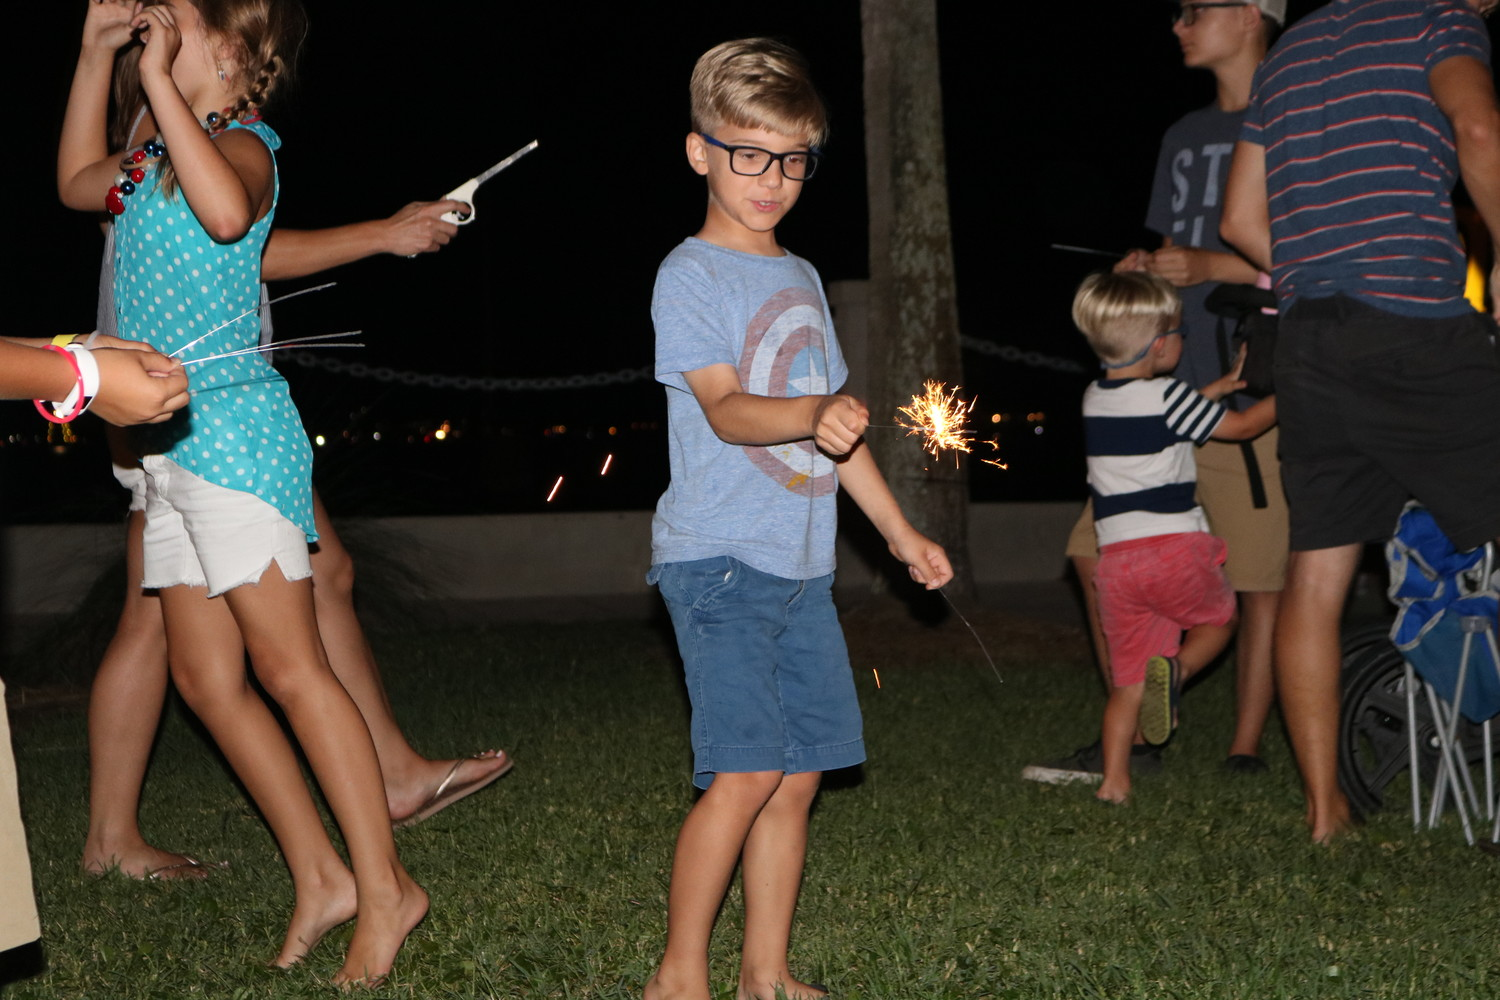 A family plays with sparklers after the fireworks concluded.